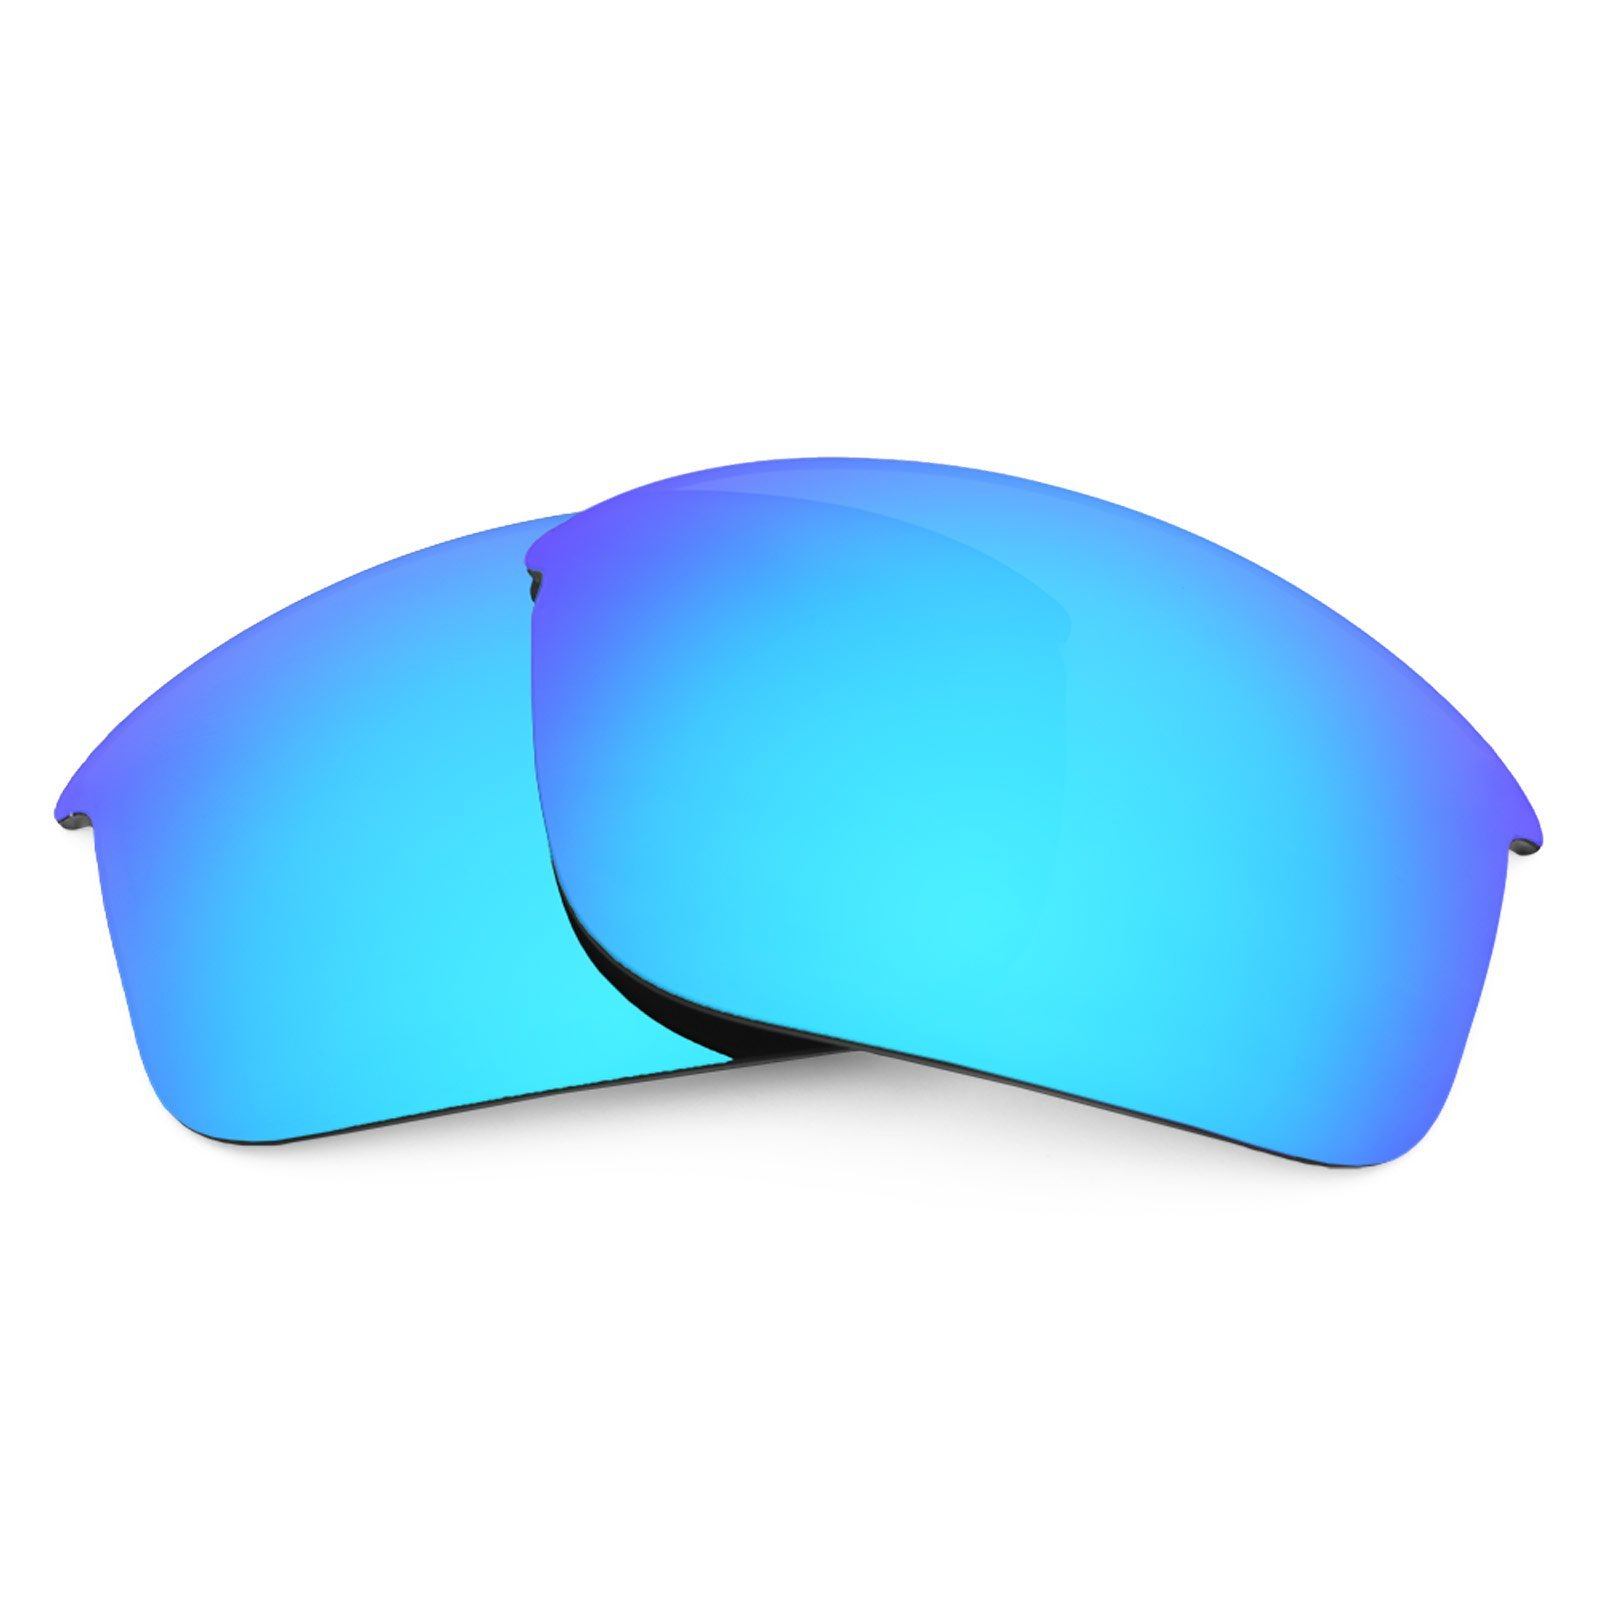 Revant Polarized Replacement Lenses for Oakley Bottle Rocket Ice Blue MirrorShield by Revant